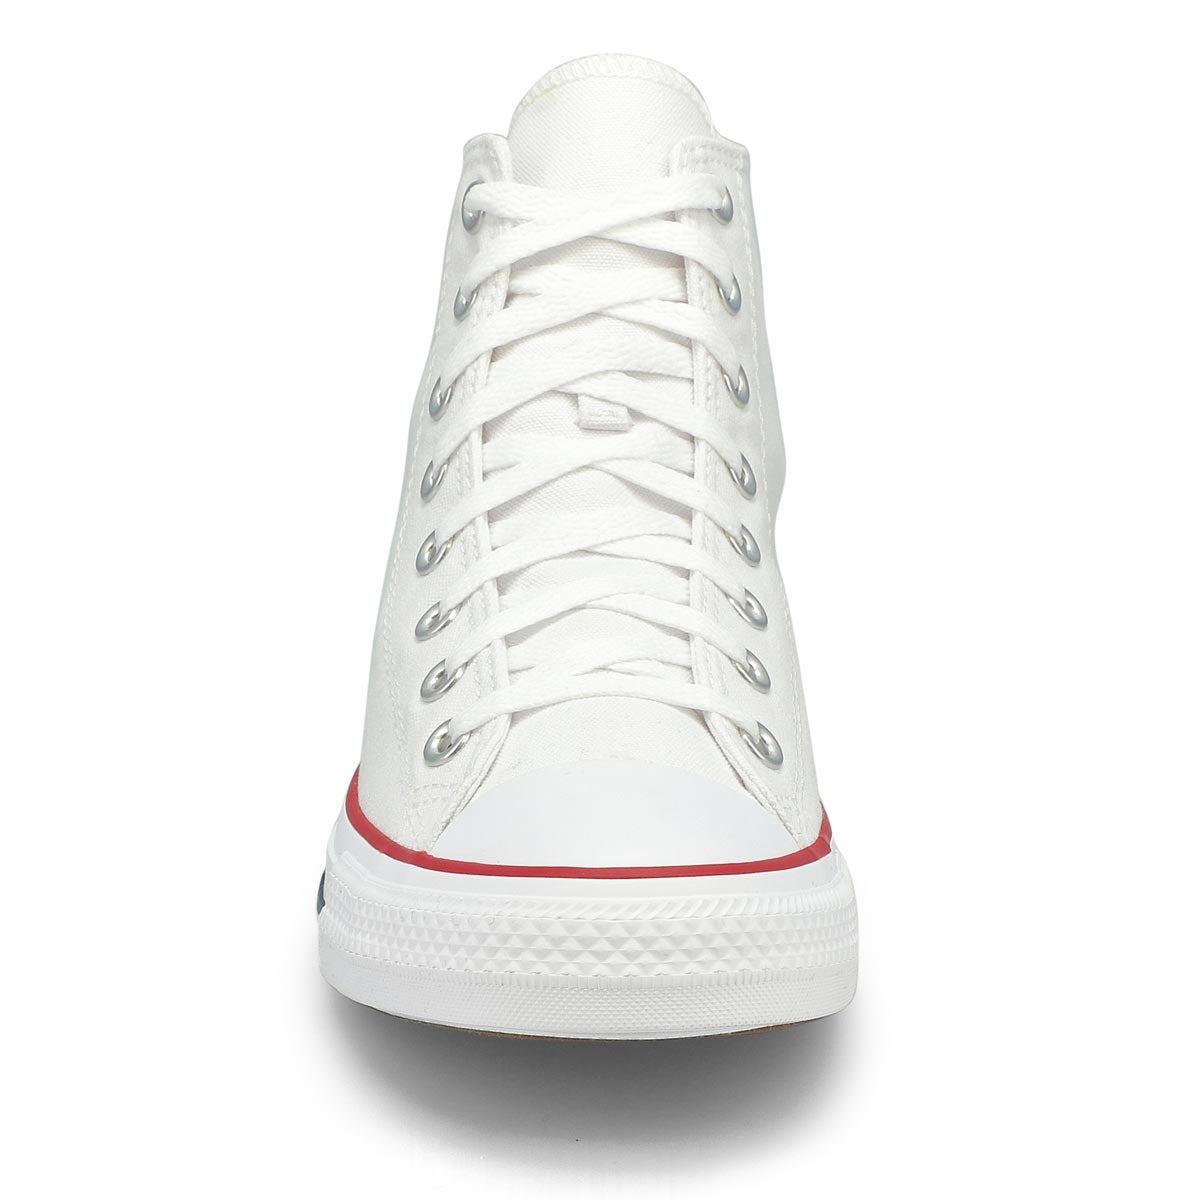 Mns CT All Star Core Hi wht high top snk